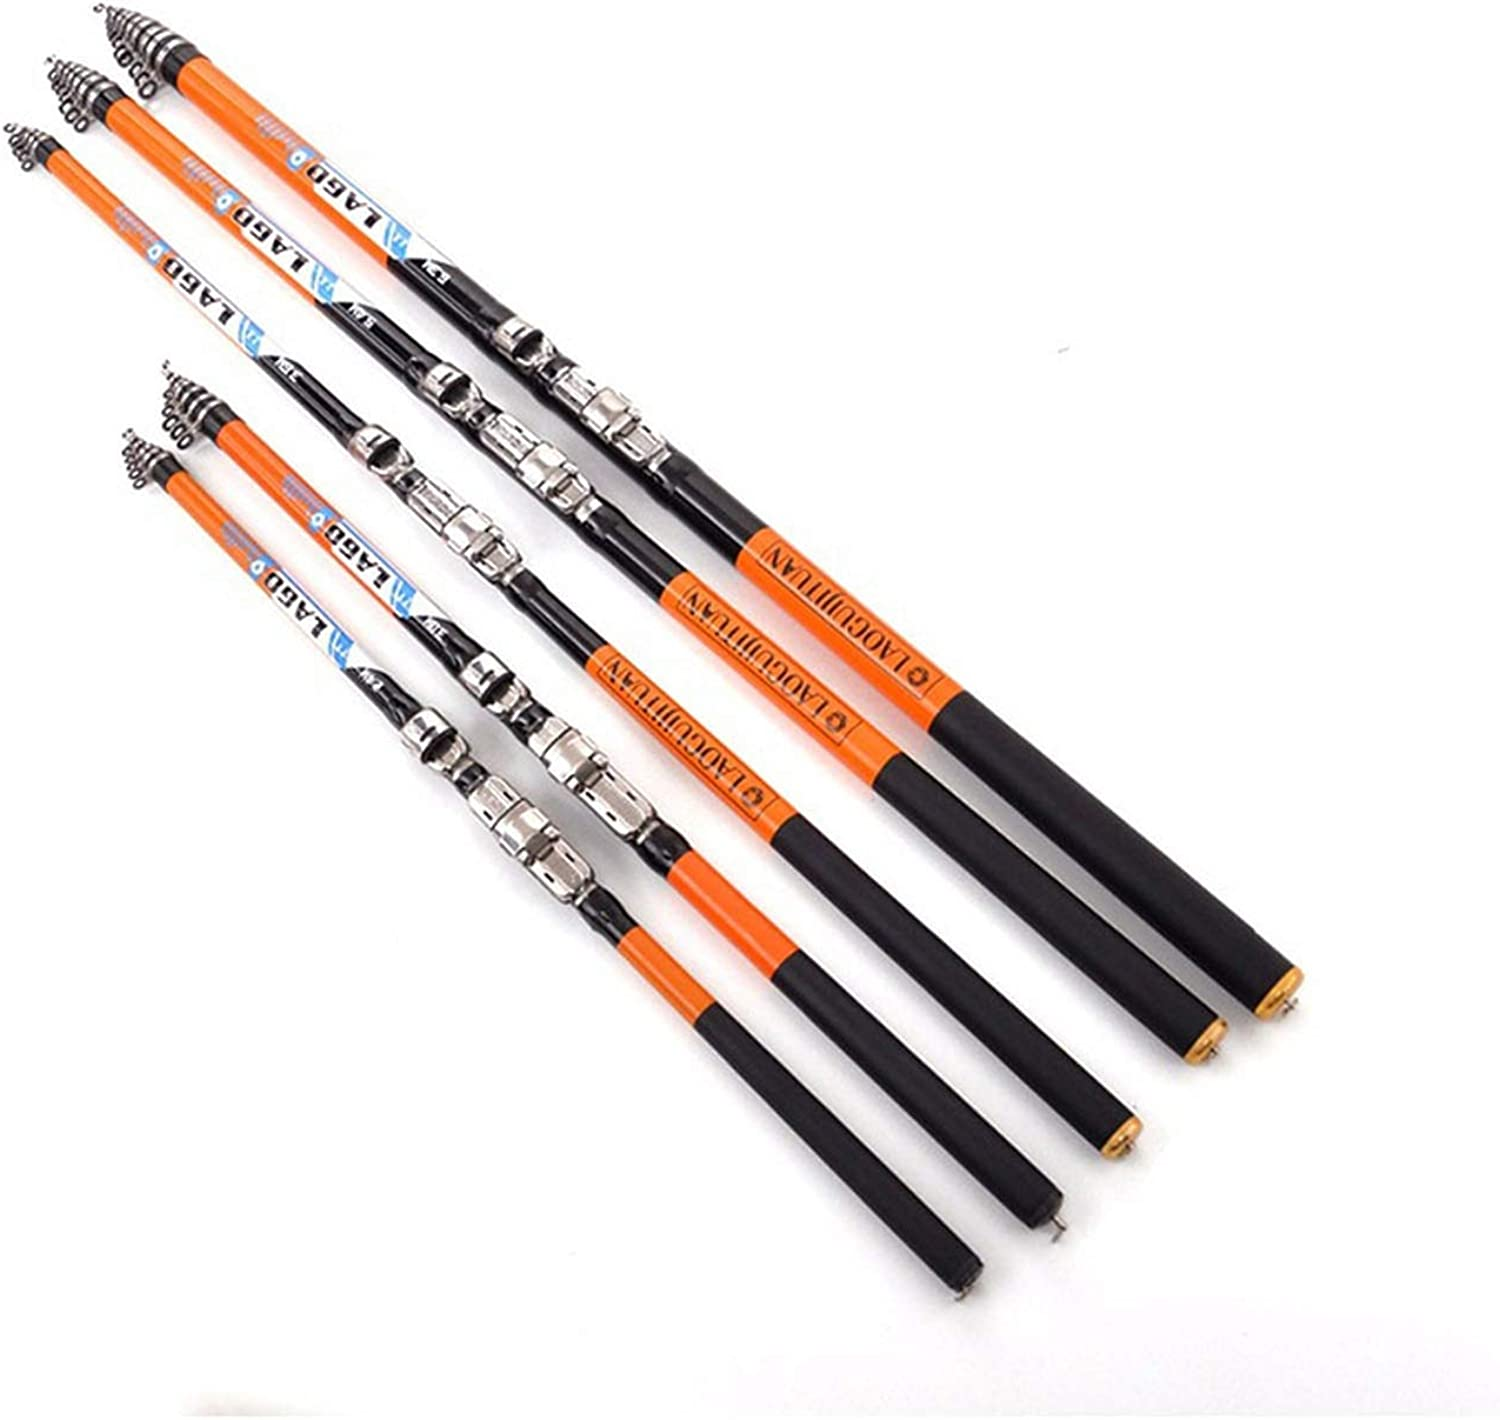 Rock Fishing Rod 2.4m 2.7m 3.0m 3.6m 4.5m 5.4m 6.3m Carbon Fiber Telescopic Fishing Rod